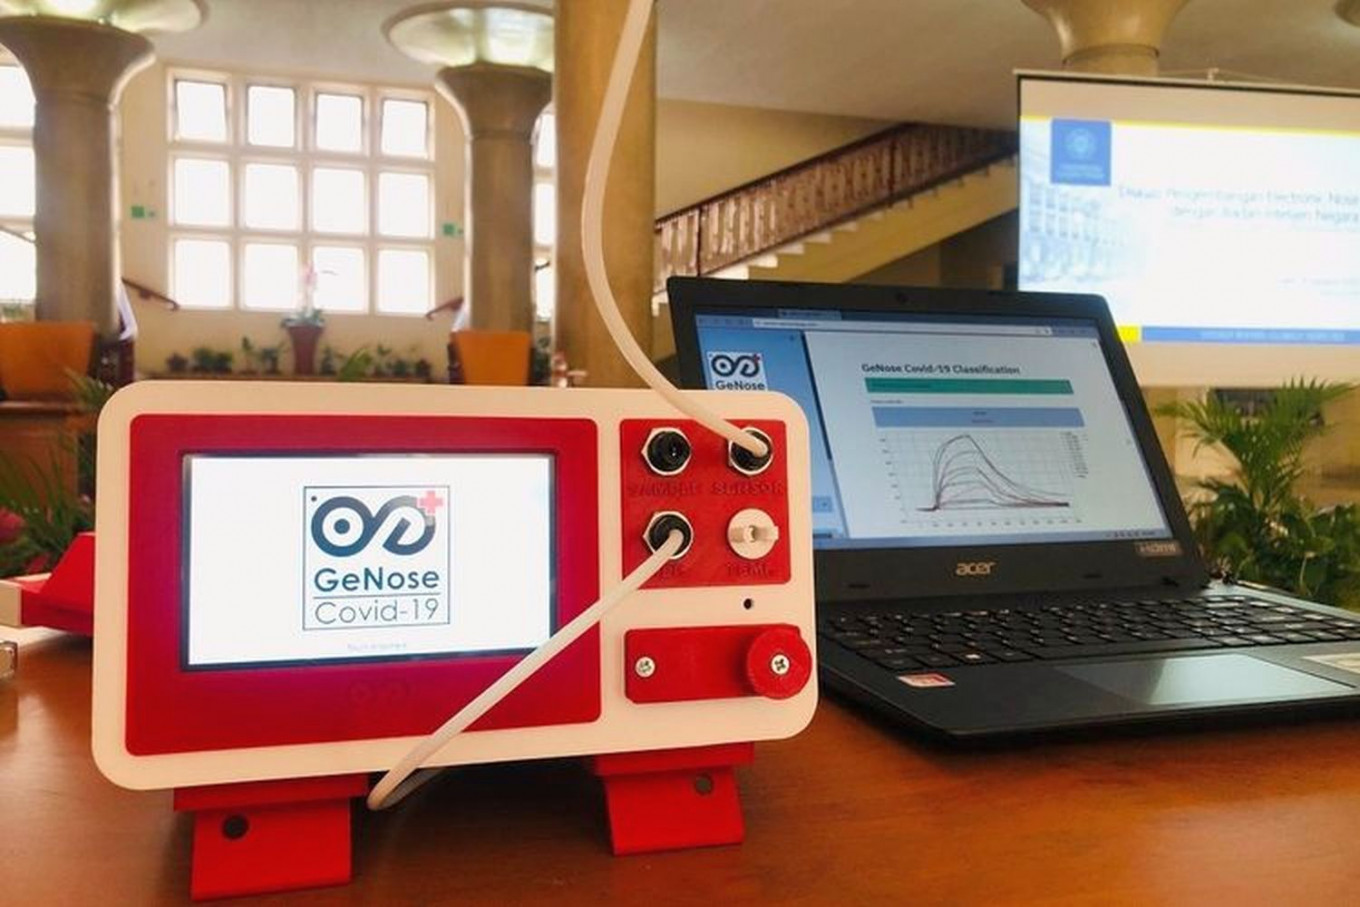 Locally made COVID-19 detector approved by Health Ministry